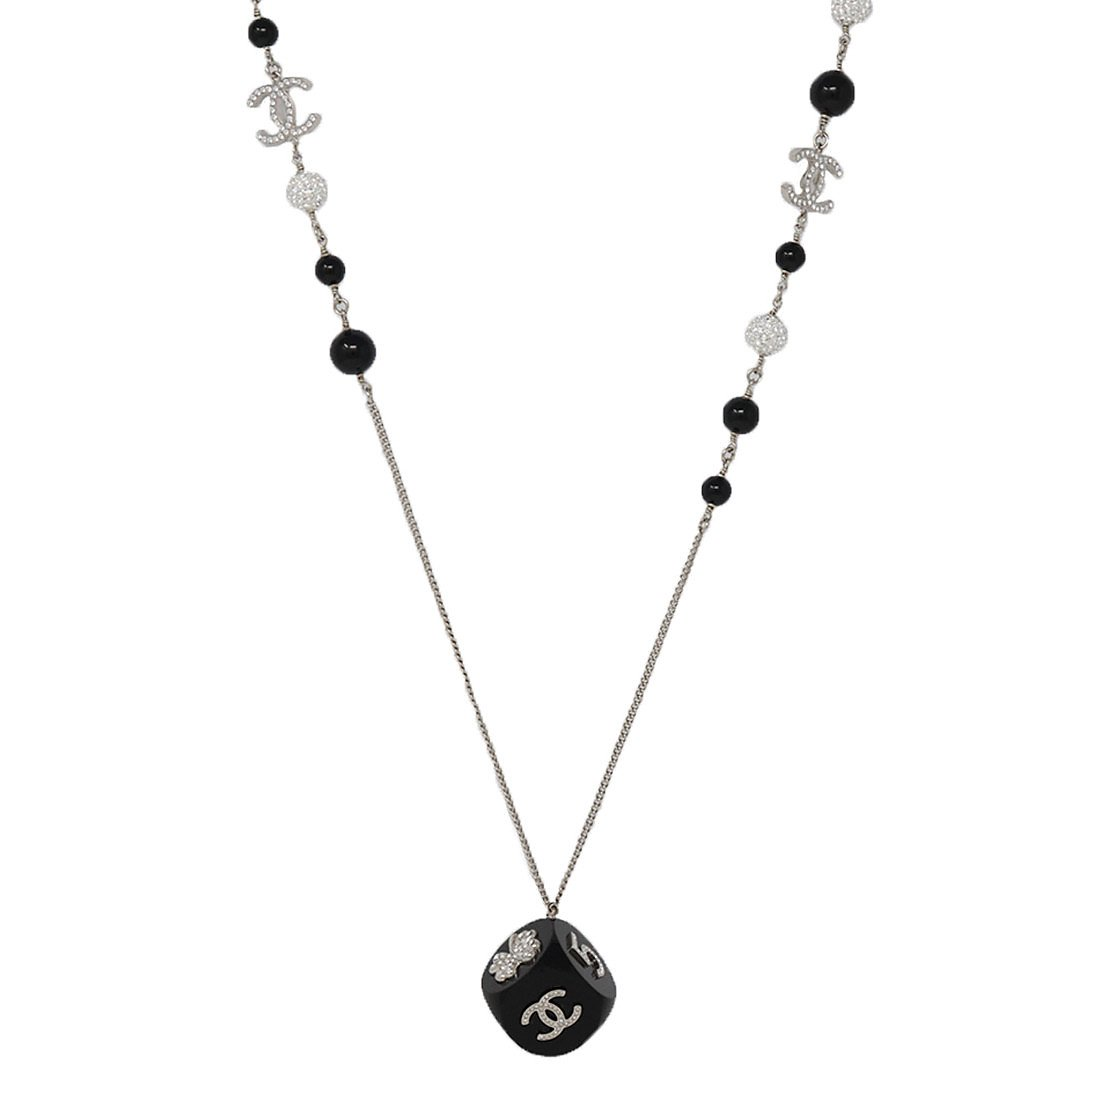 CHANEL Dice Necklace